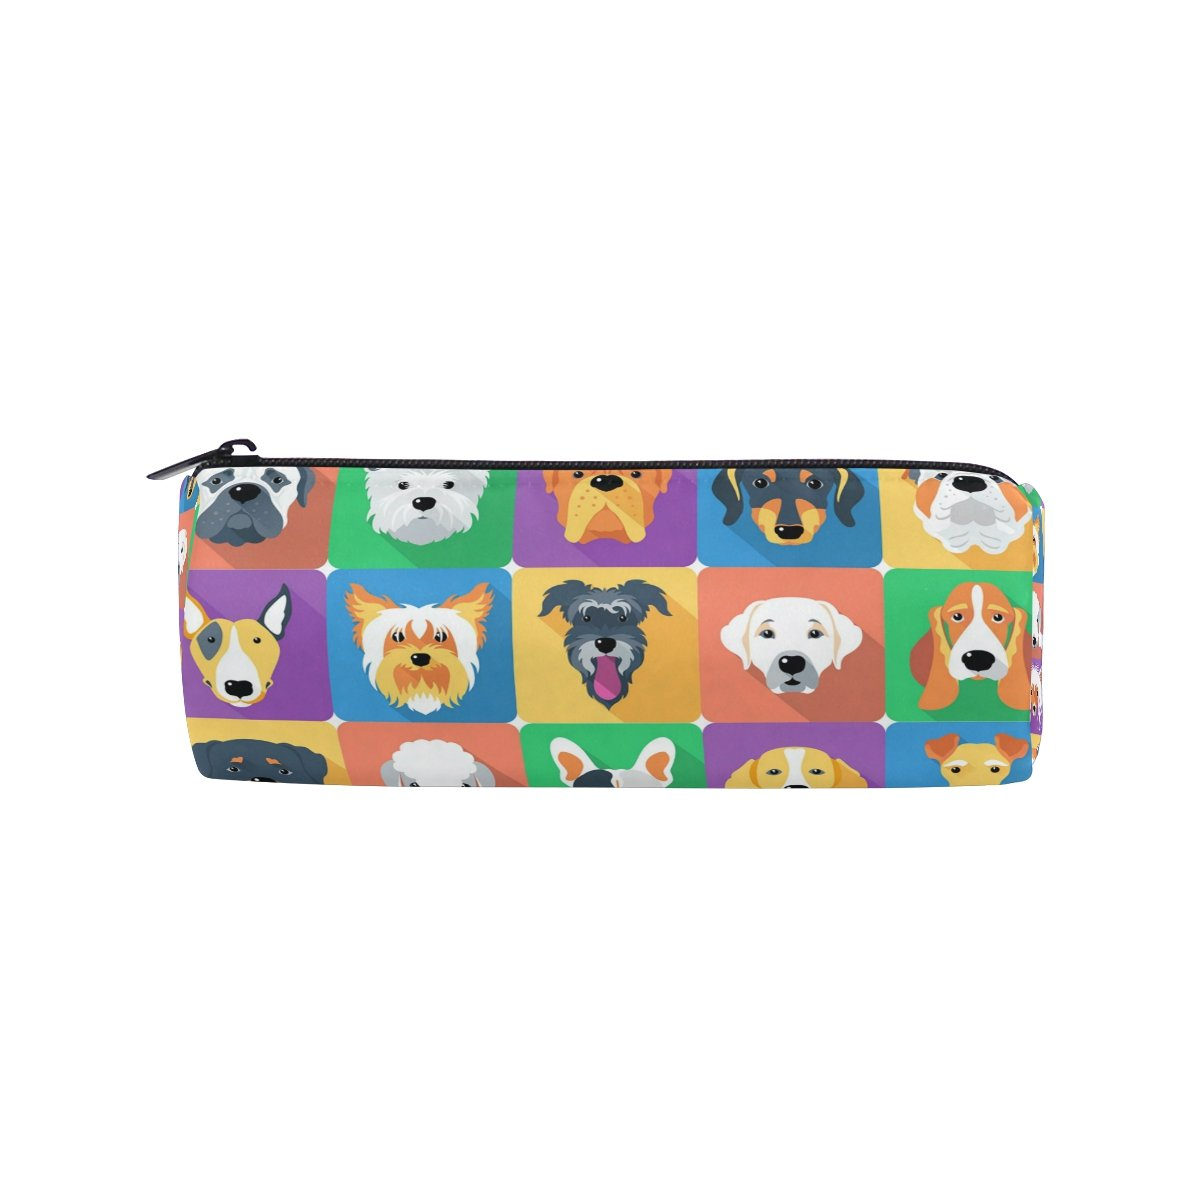 ALAZA Dogs Icon Animal Flat Design Pencil Pen Case Pouch Bag with Zipper for Girls Kids School Student Stationery Office Supplies